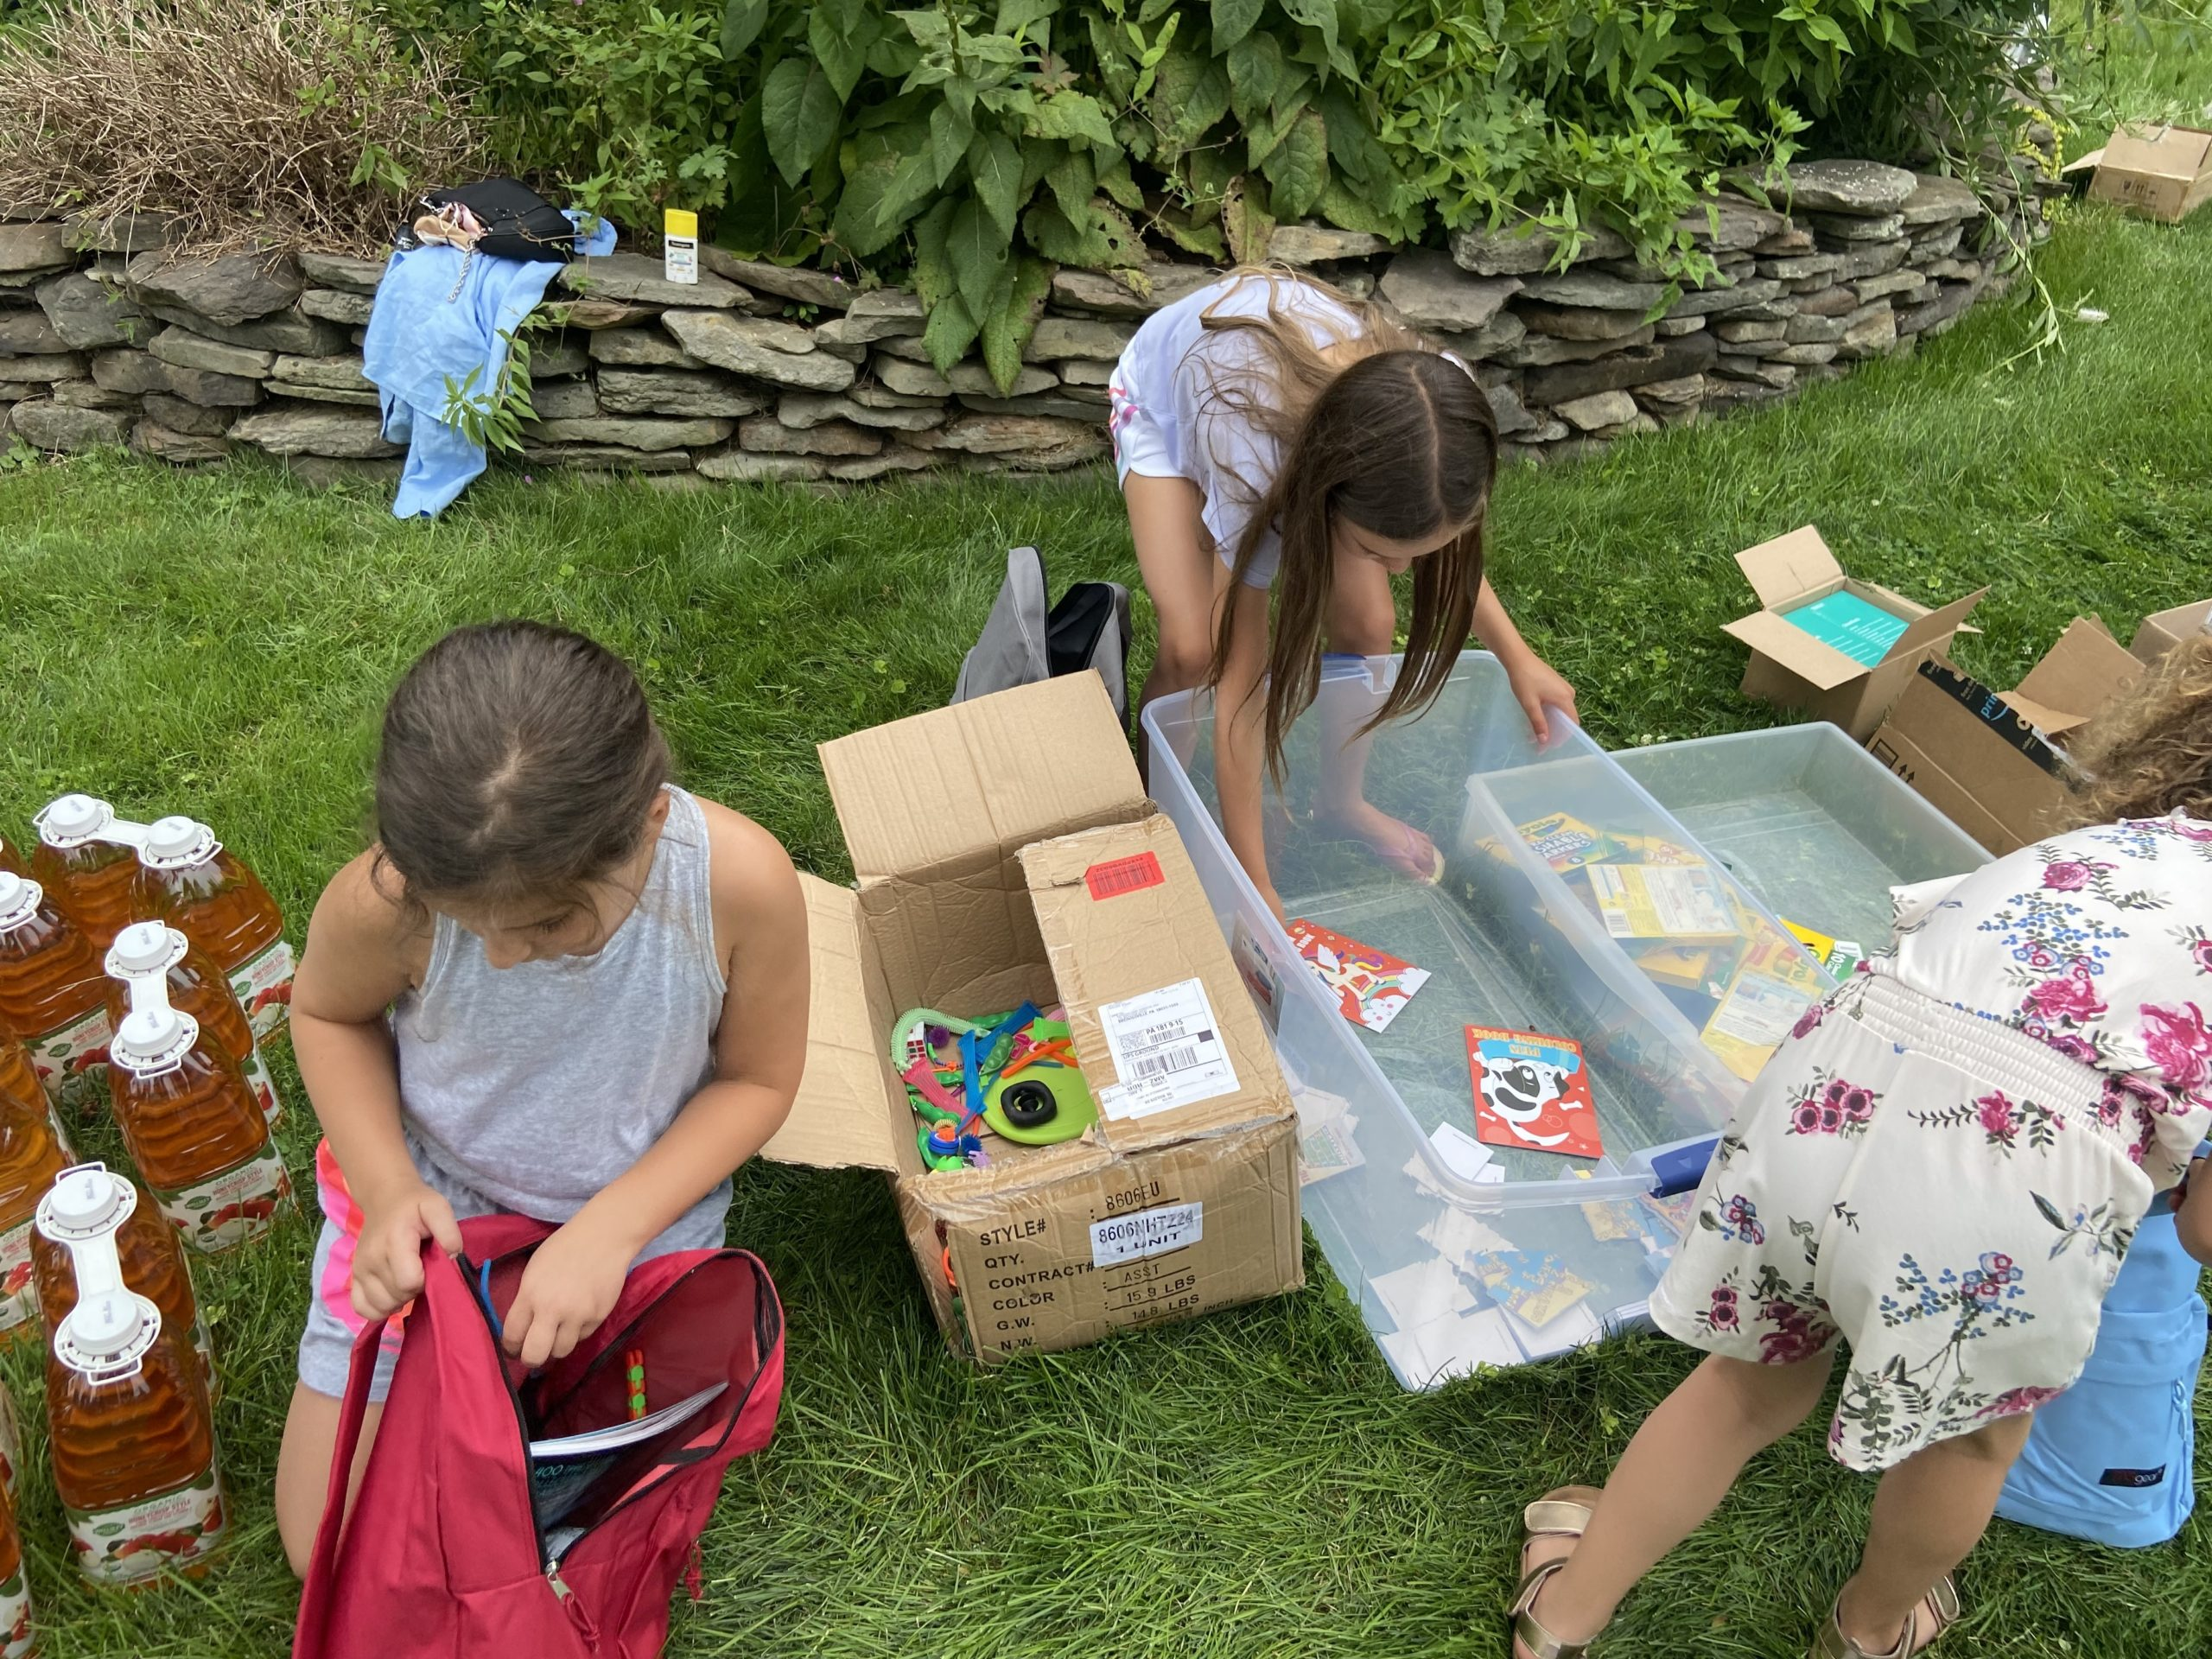 Young volunteers packed bags with food, activities, and summer essentials.